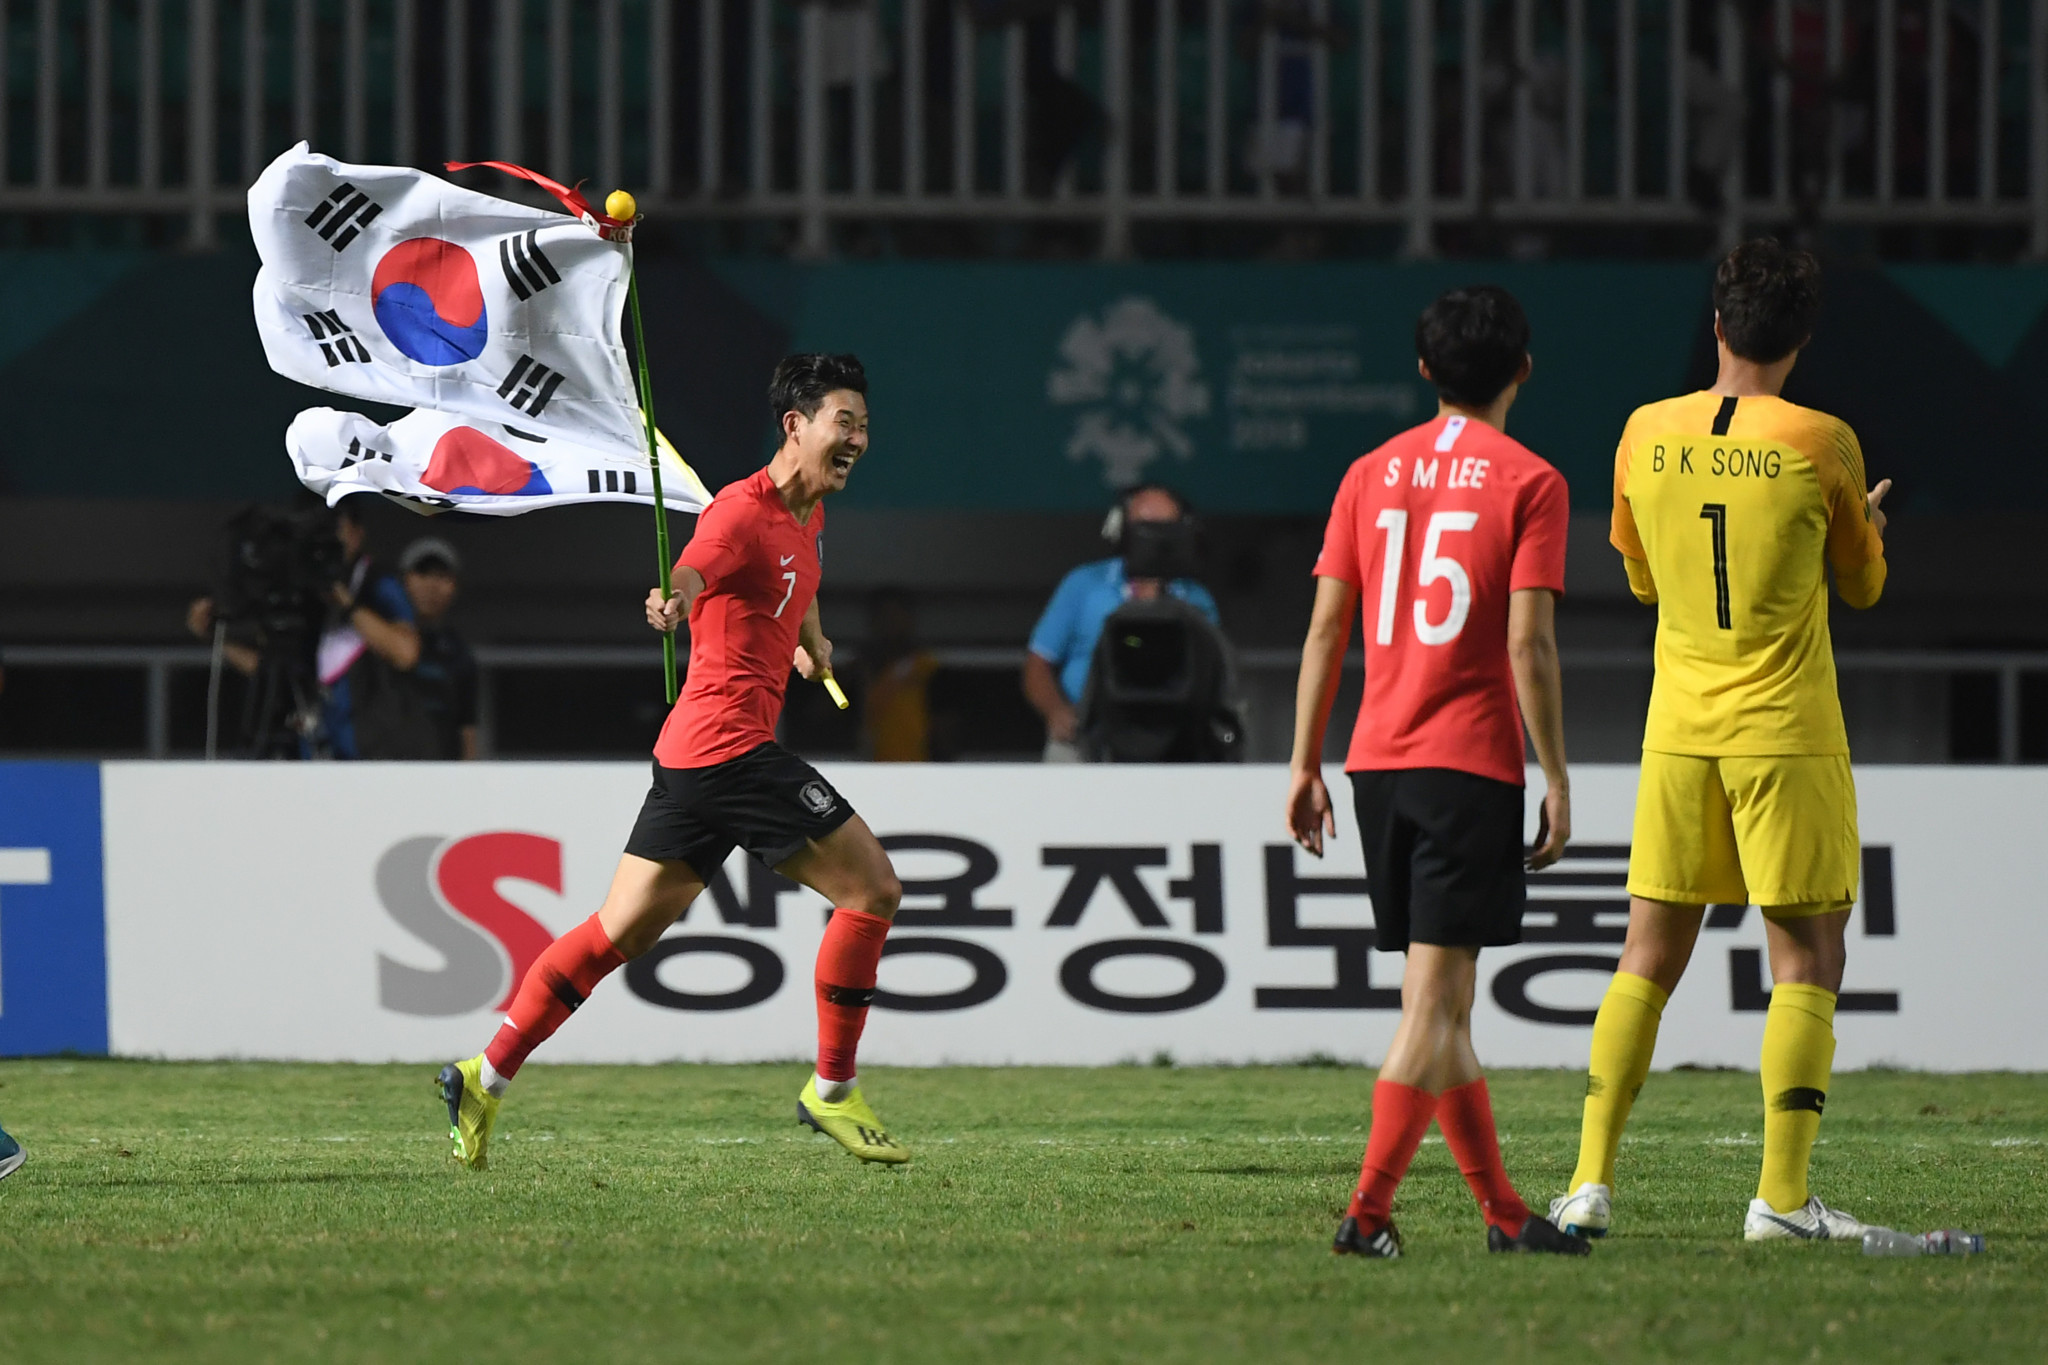 South Korea will hope to win a third consecutive Asian Games title next year at Hangzhou 2022 ©Getty Images